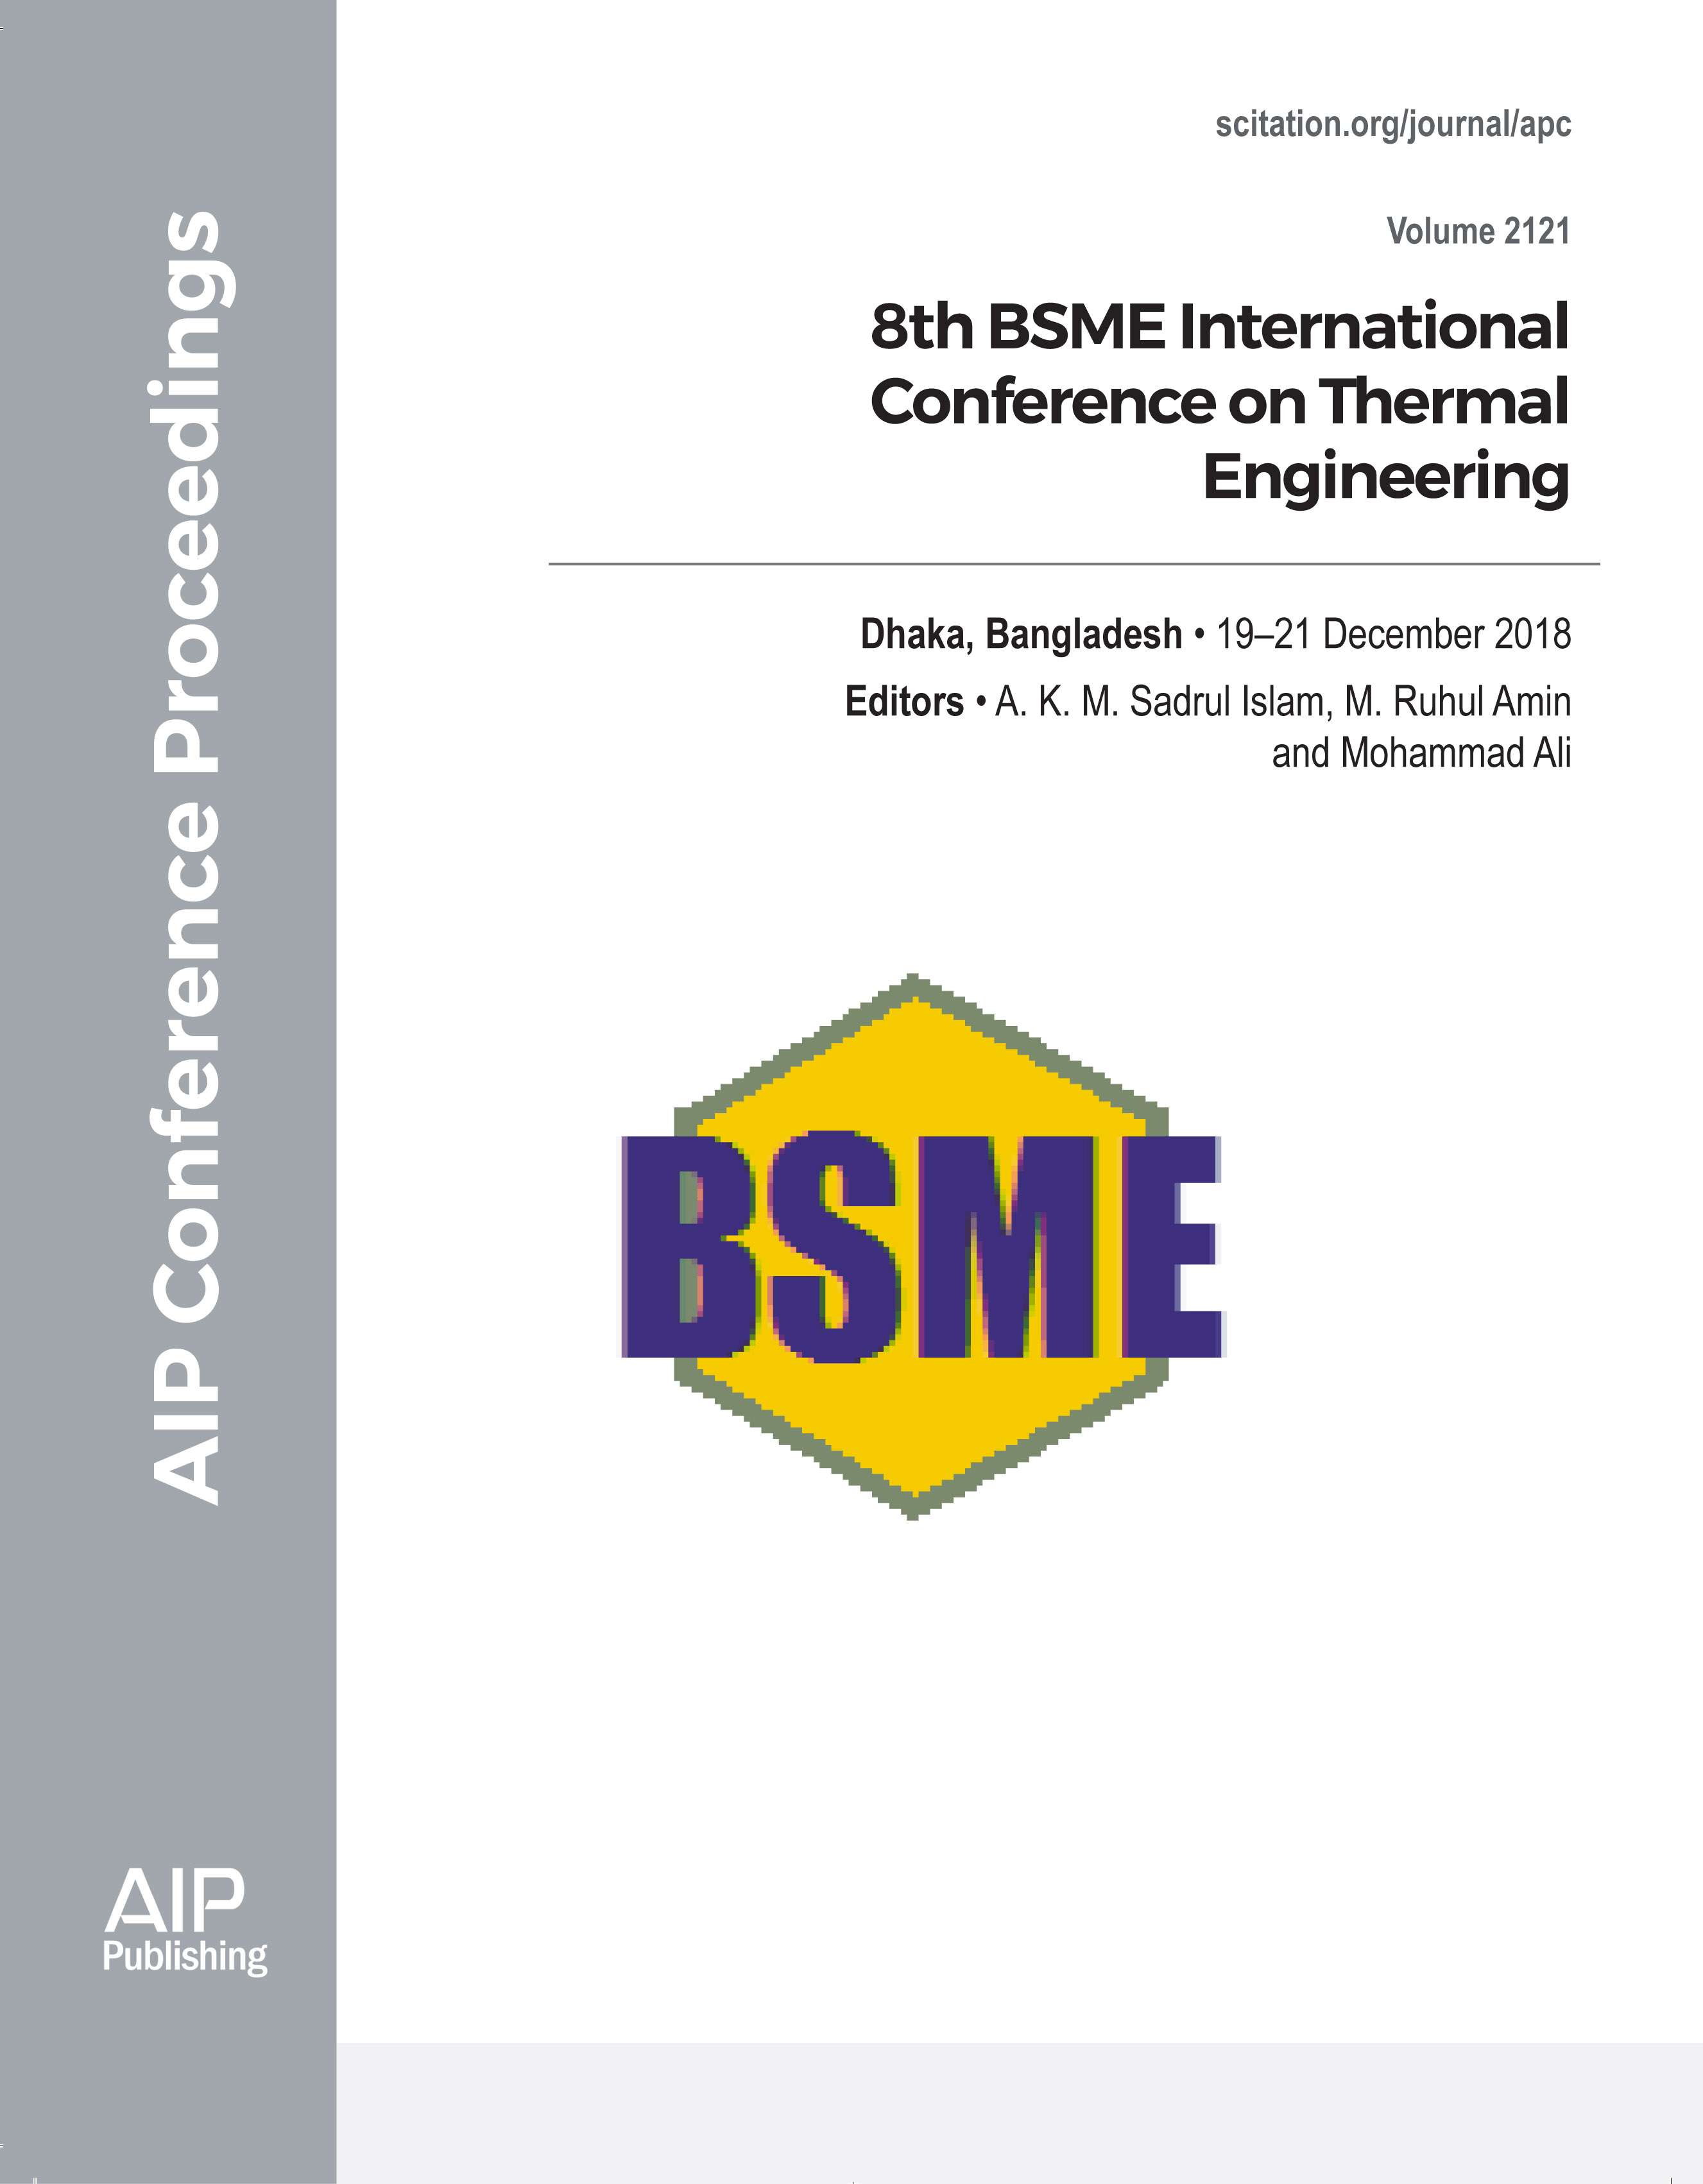 Preface: 8th BSME International Conference on Thermal